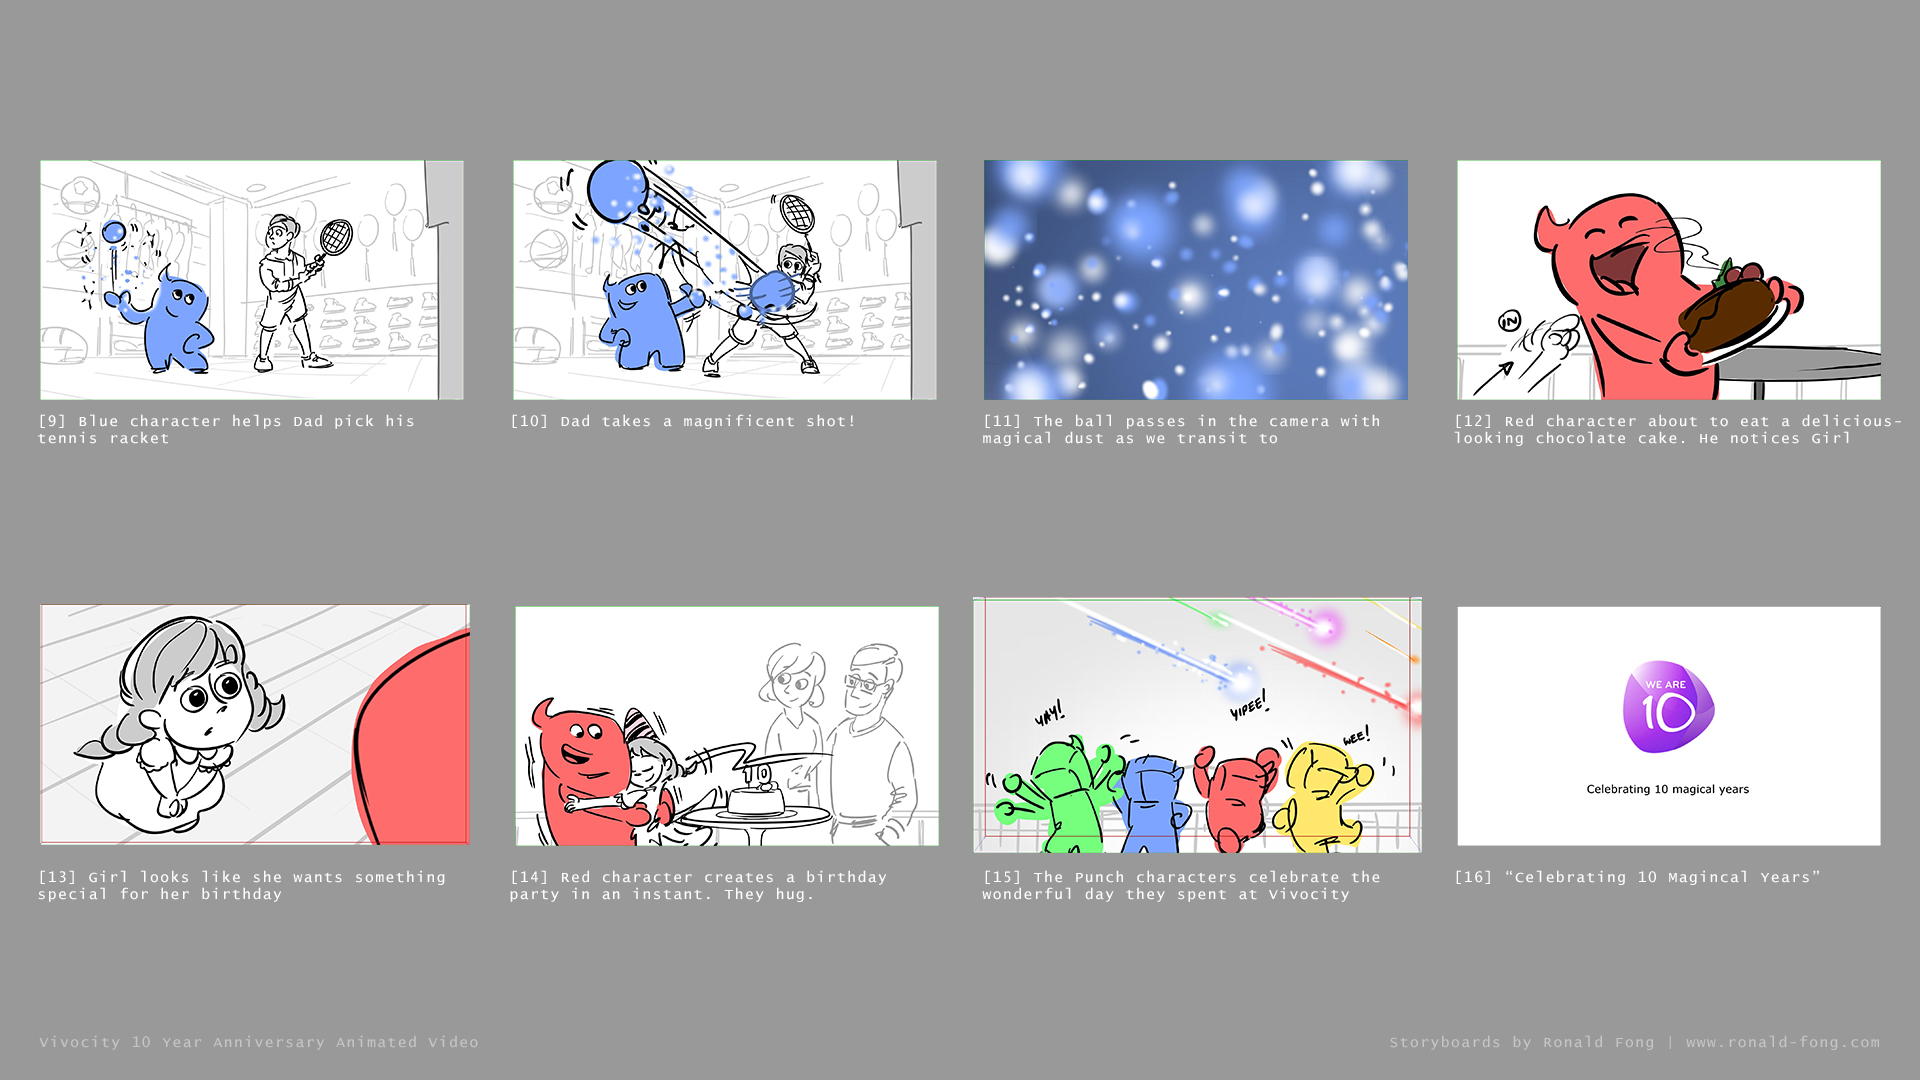 Vivocity Animation Storyboards Page 2